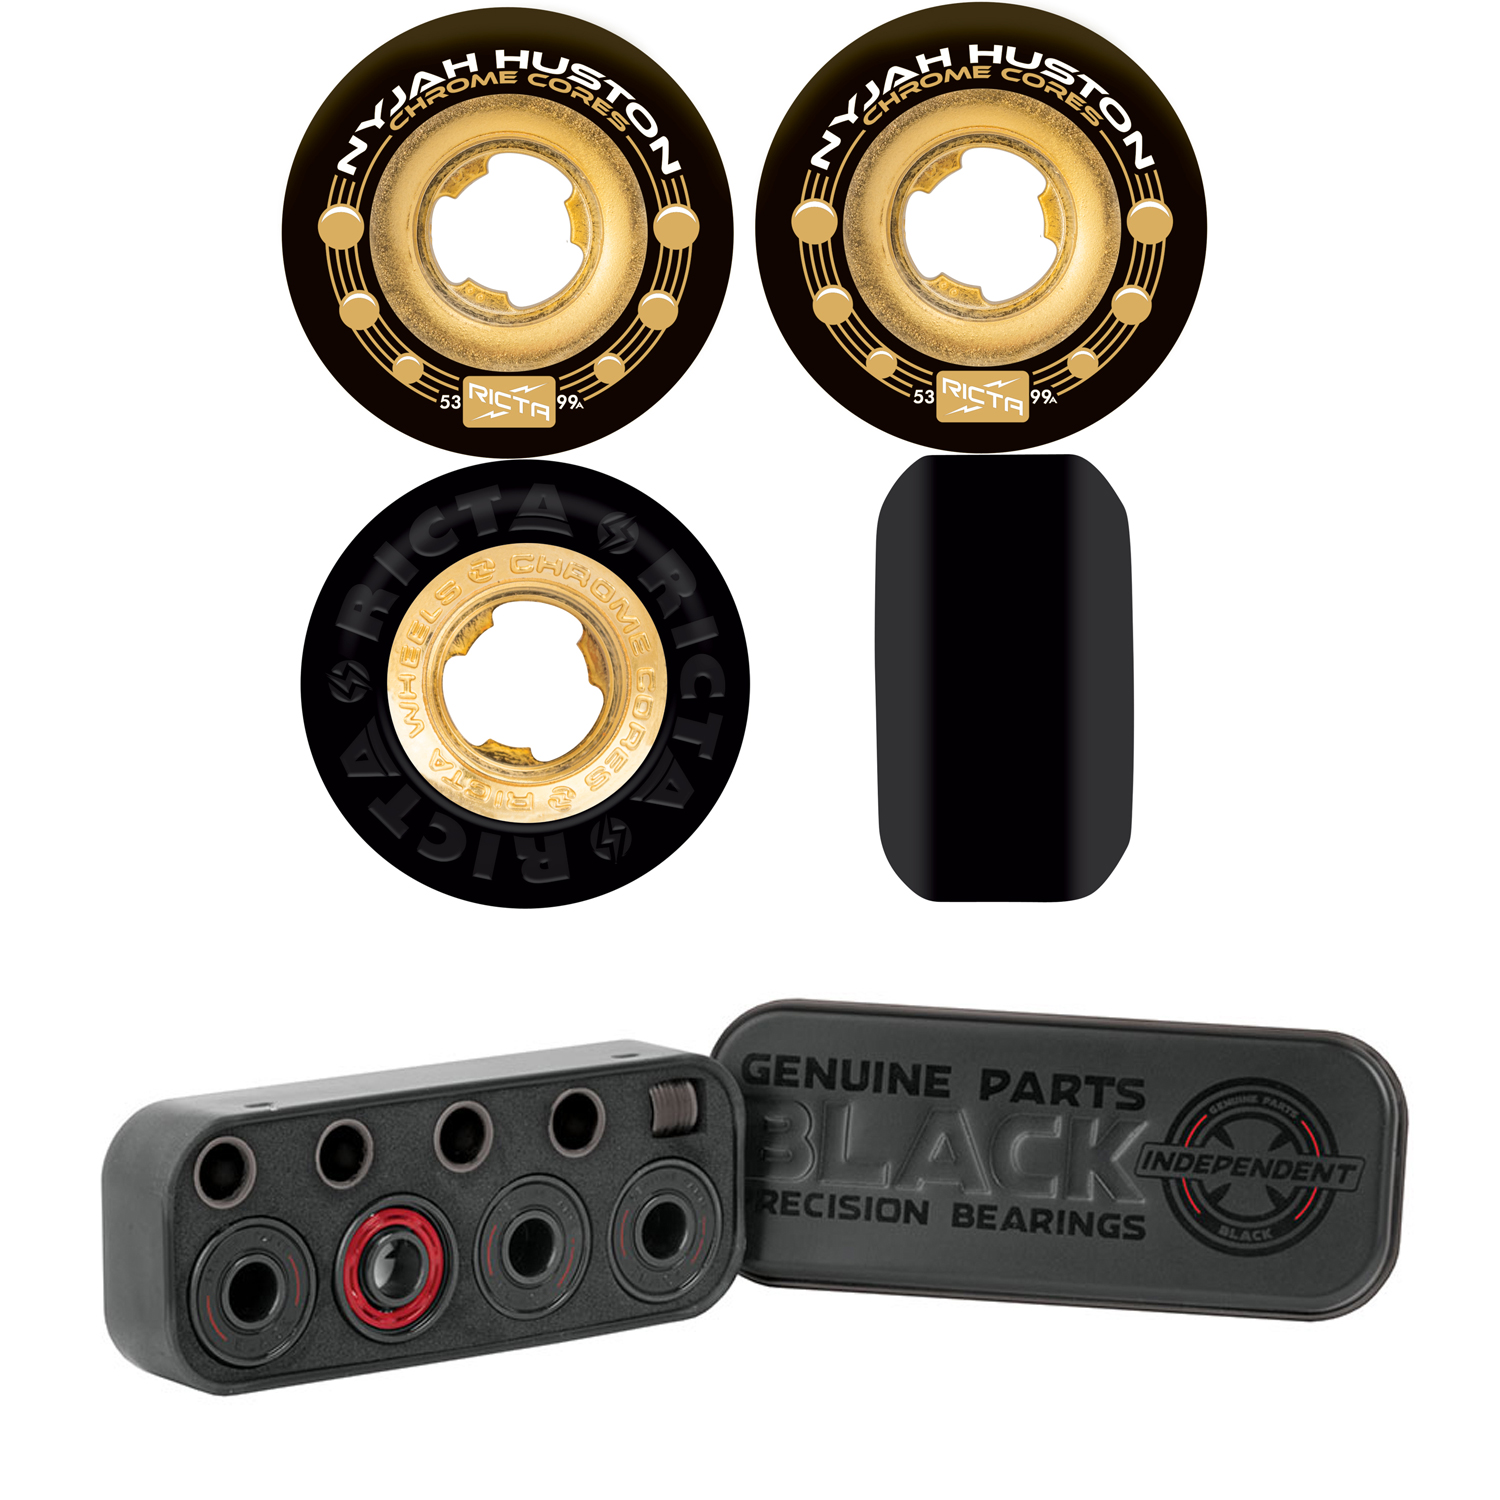 Details about Ricta Skateboard Wheels 53mm Nyjah Huston Chrome Core  Black/Gold + INDEPENDENT B